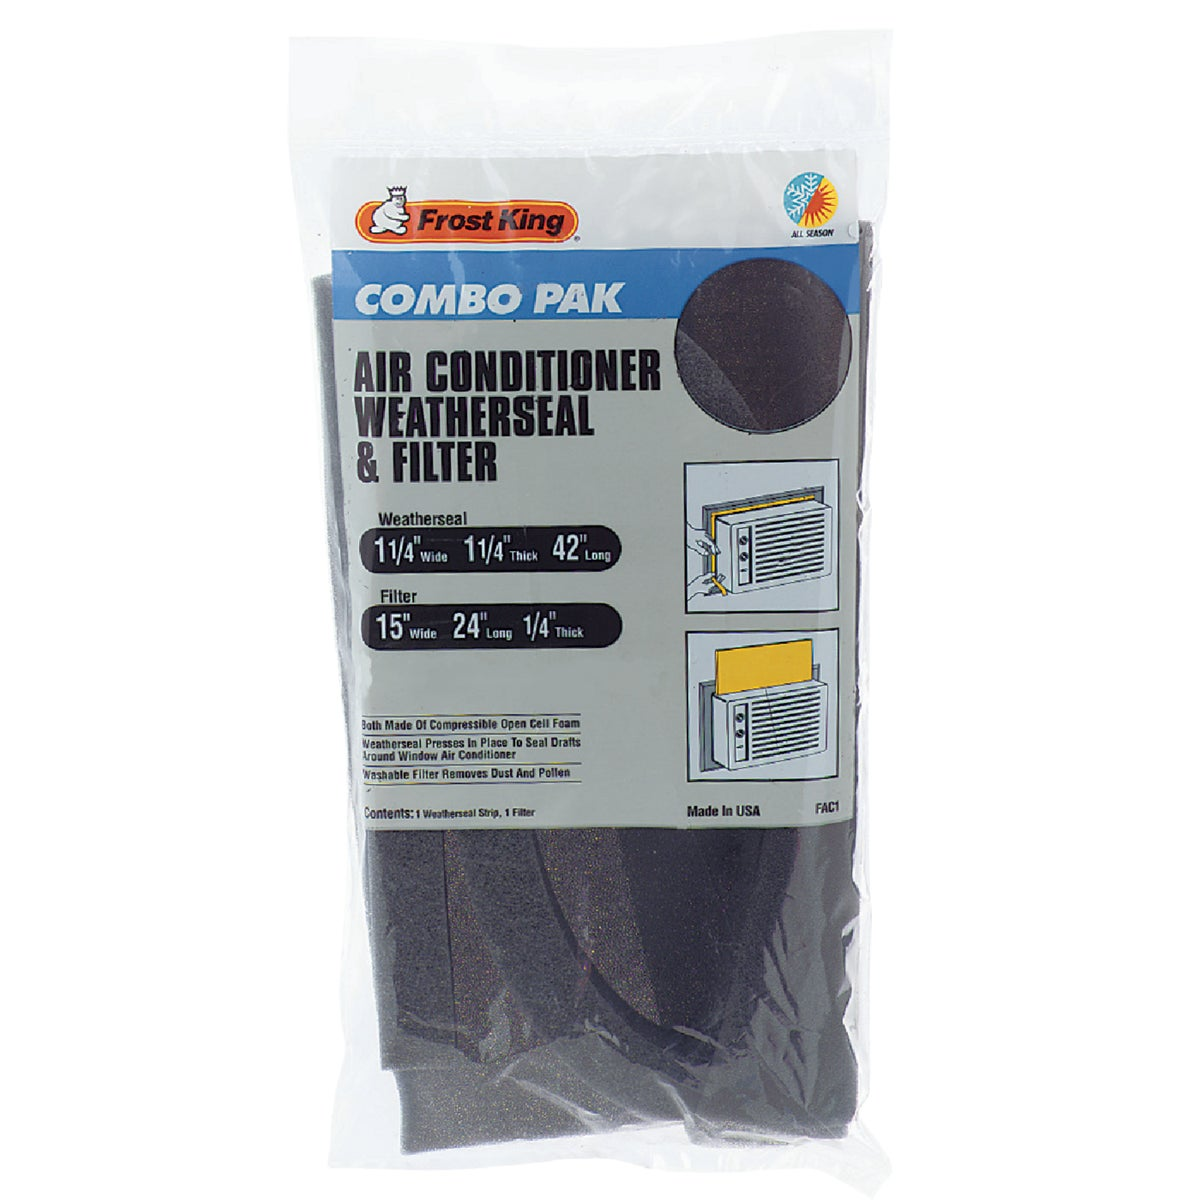 Air Conditioner Filter & Weatherseal Kit